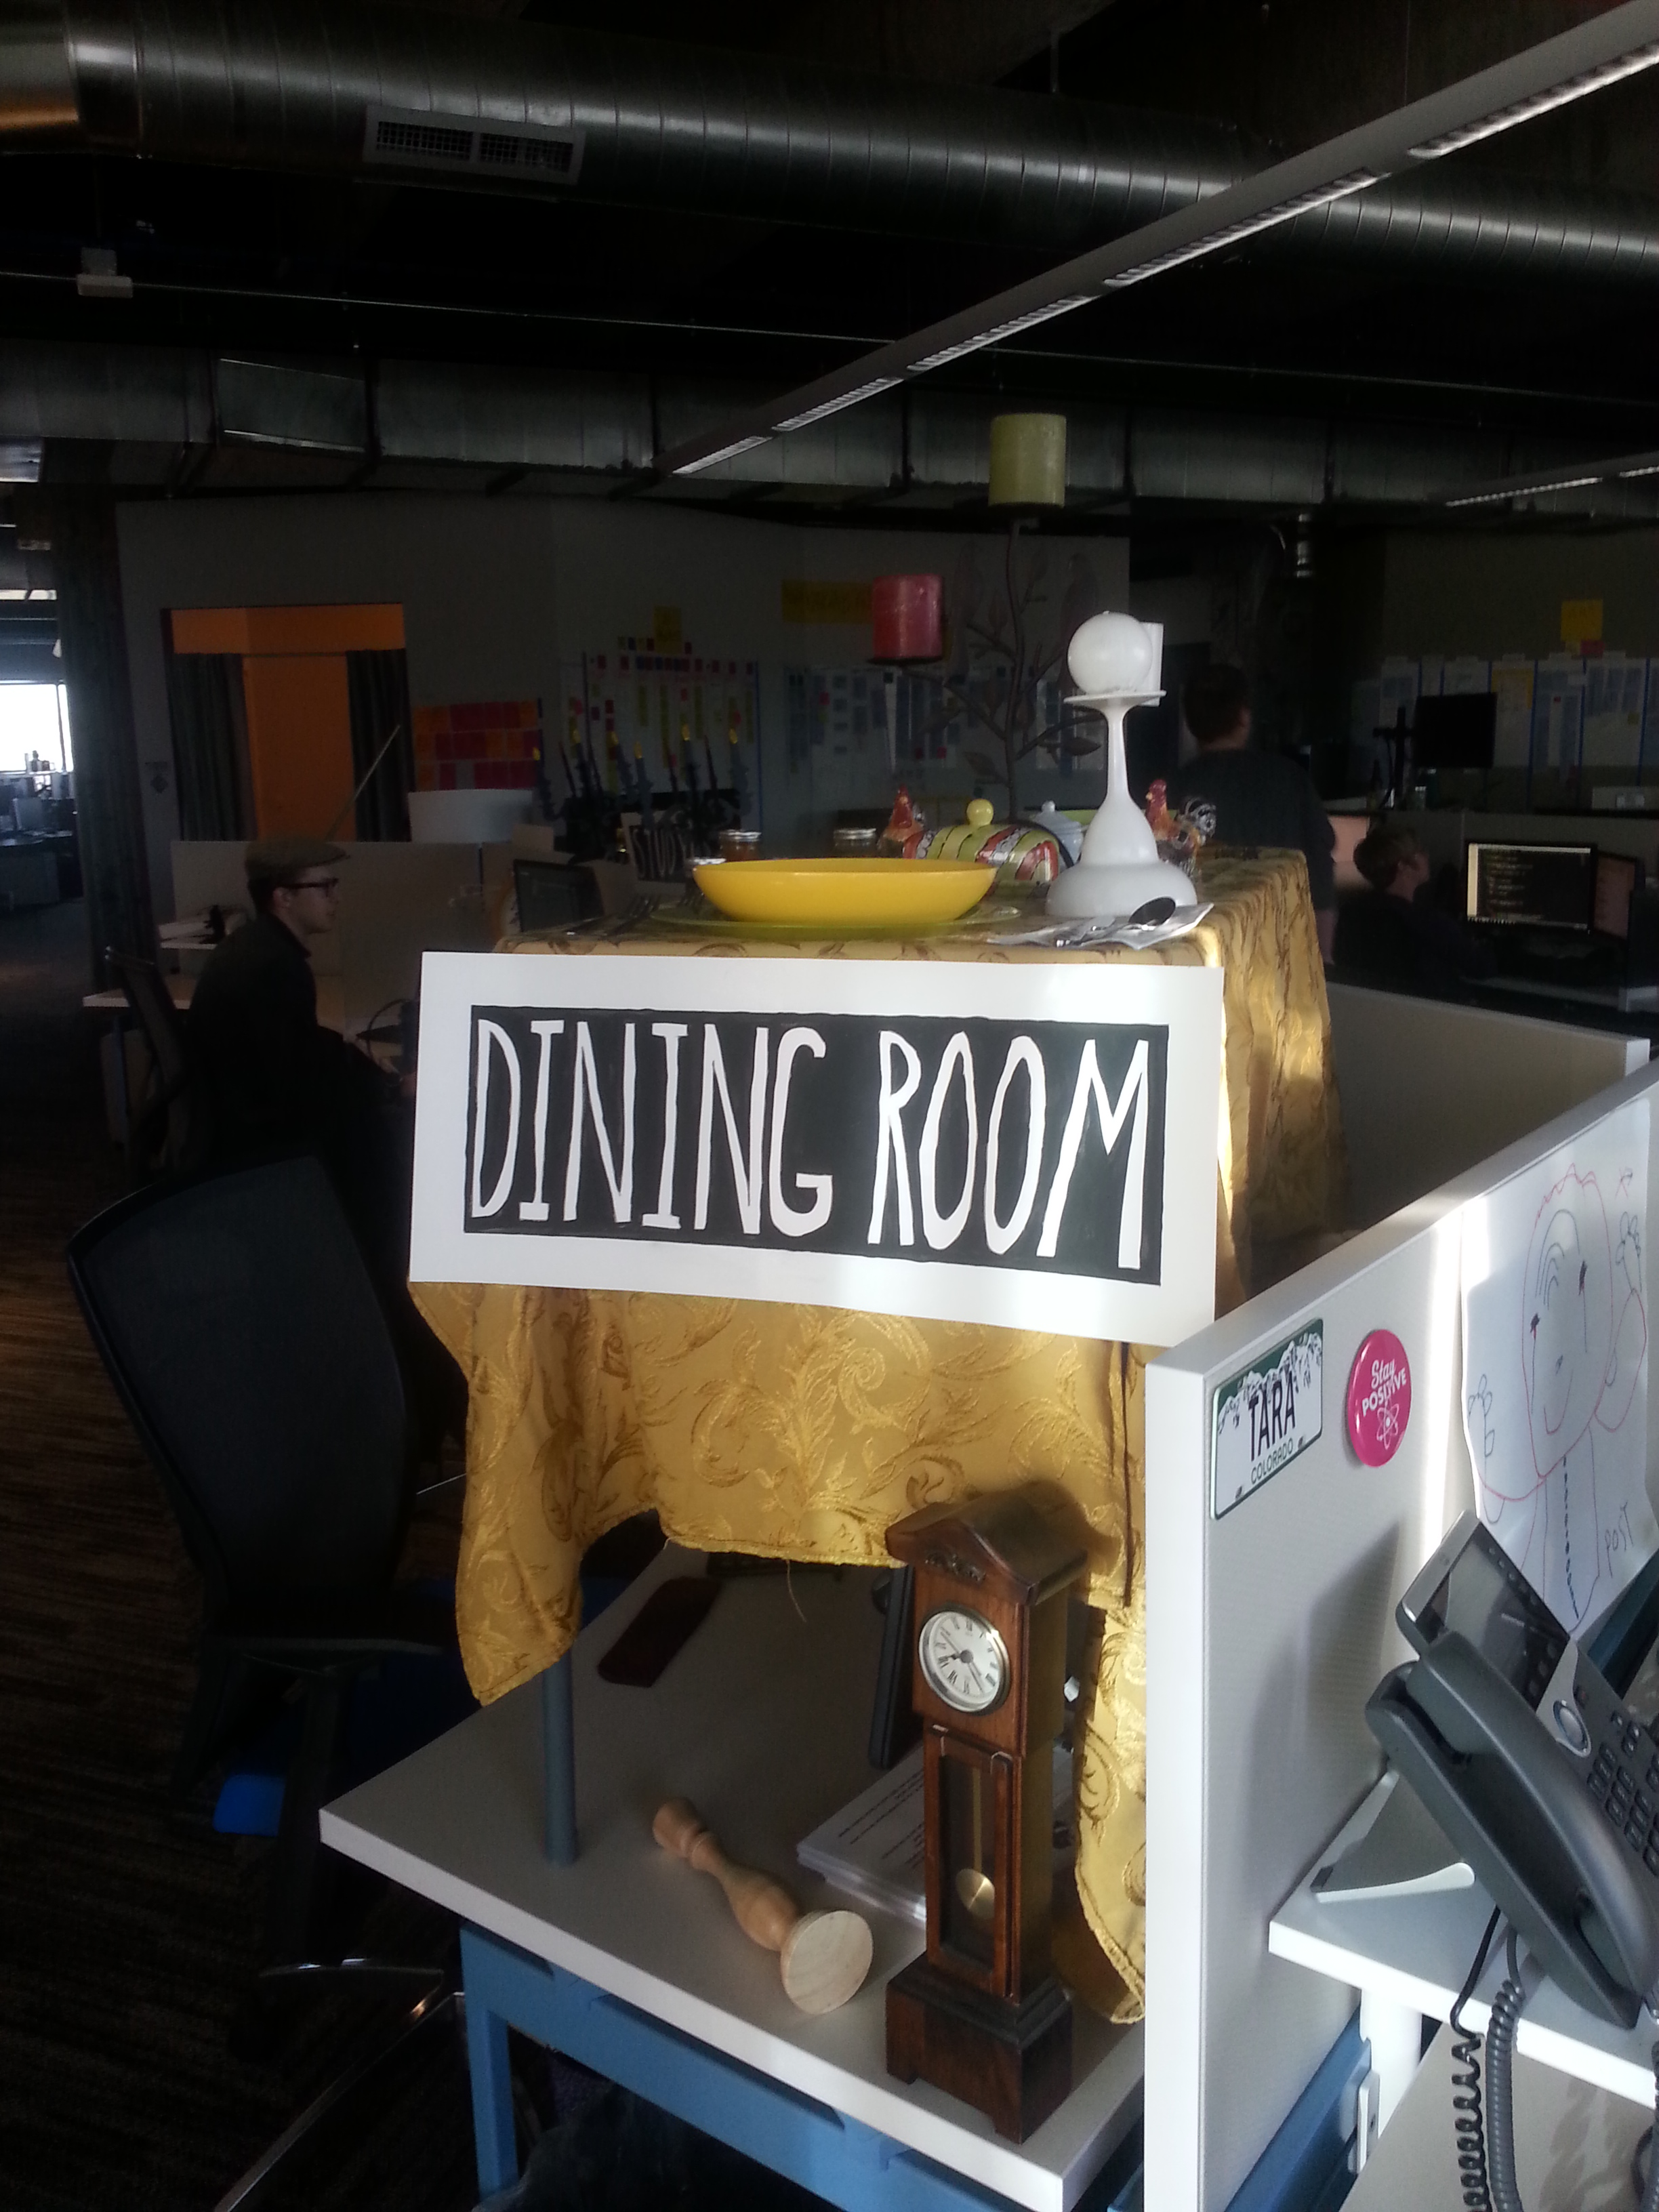 dining room.bmp